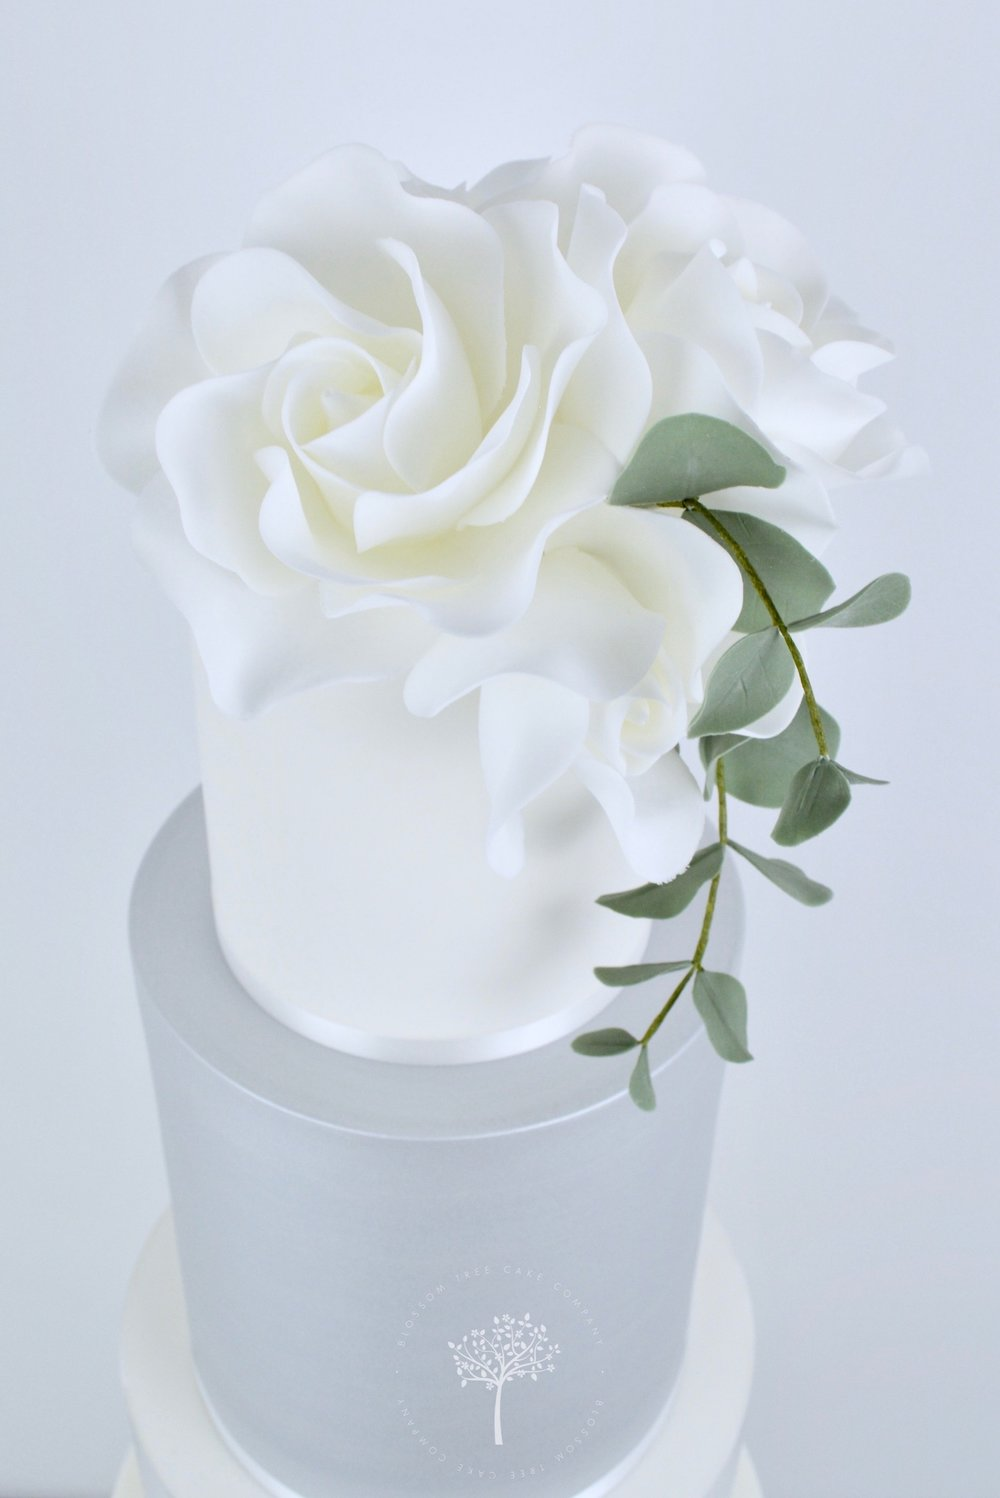 Roses and Silver Lustre wedding cake by Blossom Tree Cake Company Harrogate North Yorkshire - top sugar roses.jpg